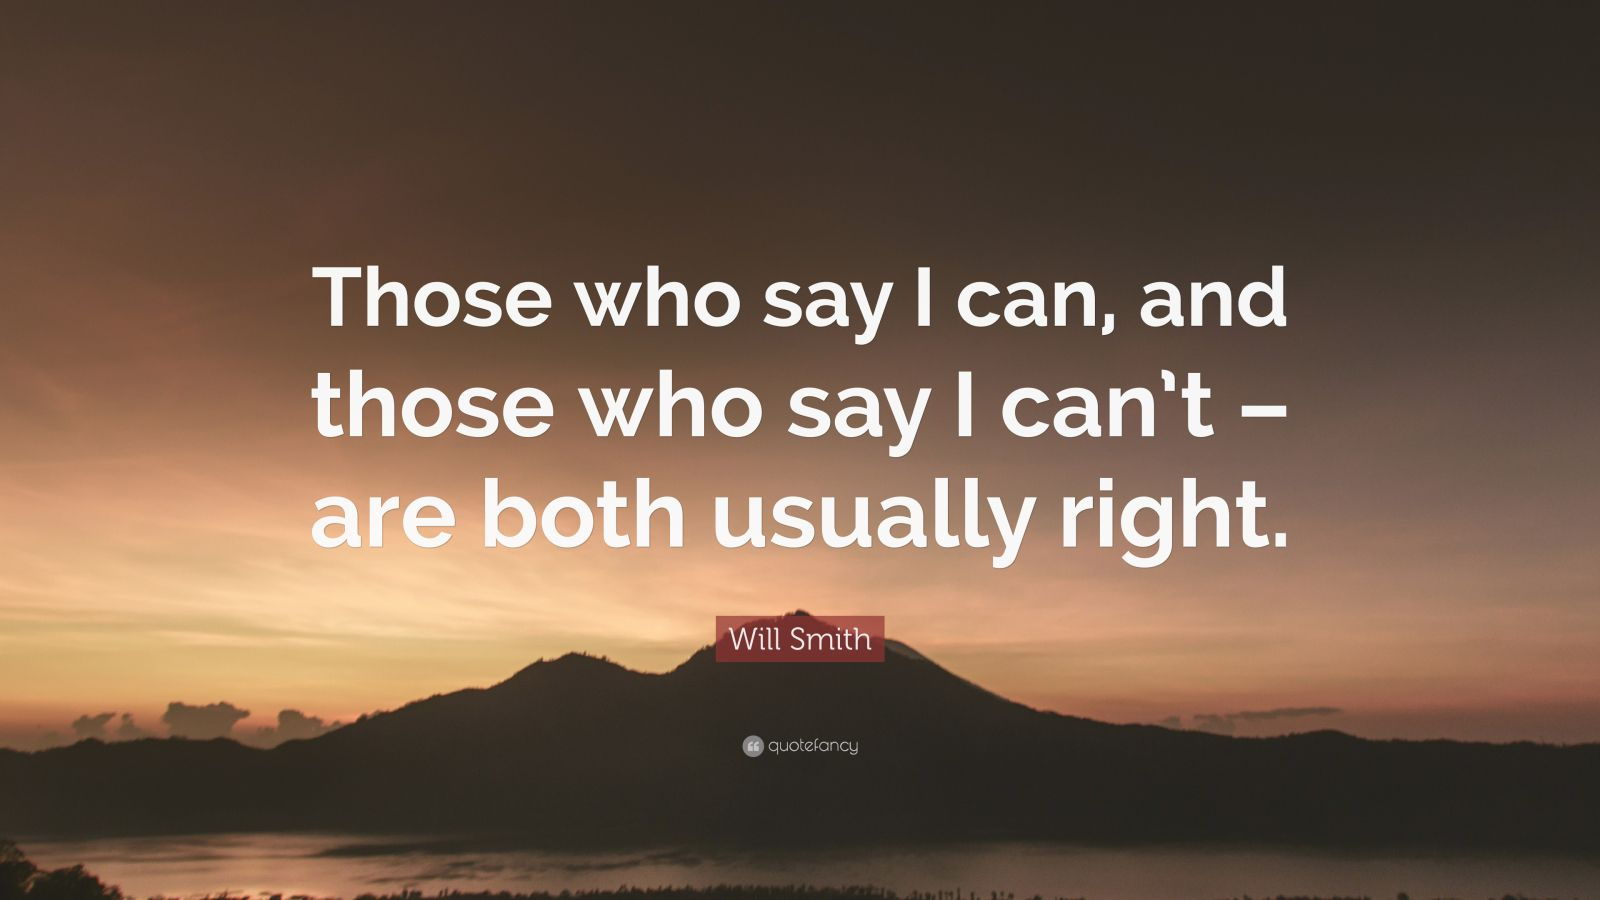 Napoleon Hill Quotes Wallpaper Will Smith Quote Those Who Say I Can And Those Who Say